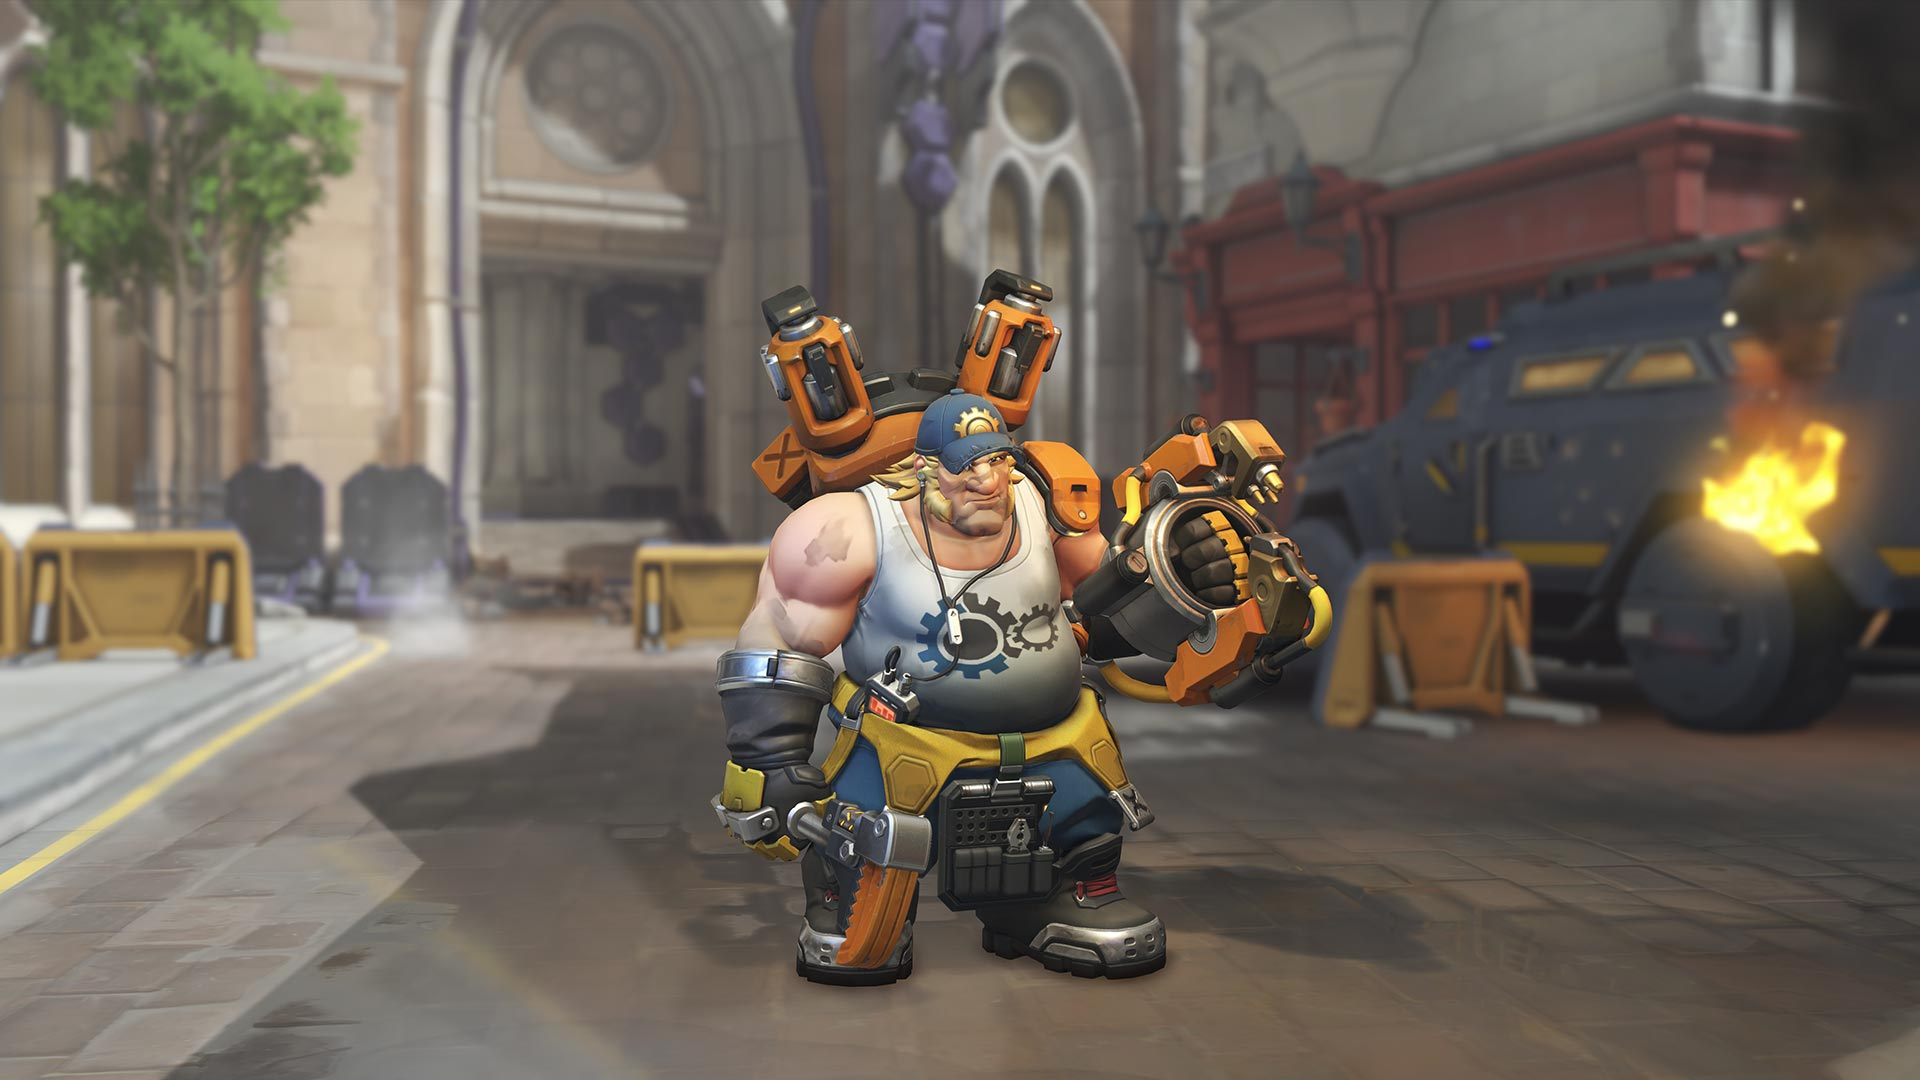 One of Torbjorn's skins from the Overwatch: Uprising event. He's missing his facial hair, and it's just really...weird.